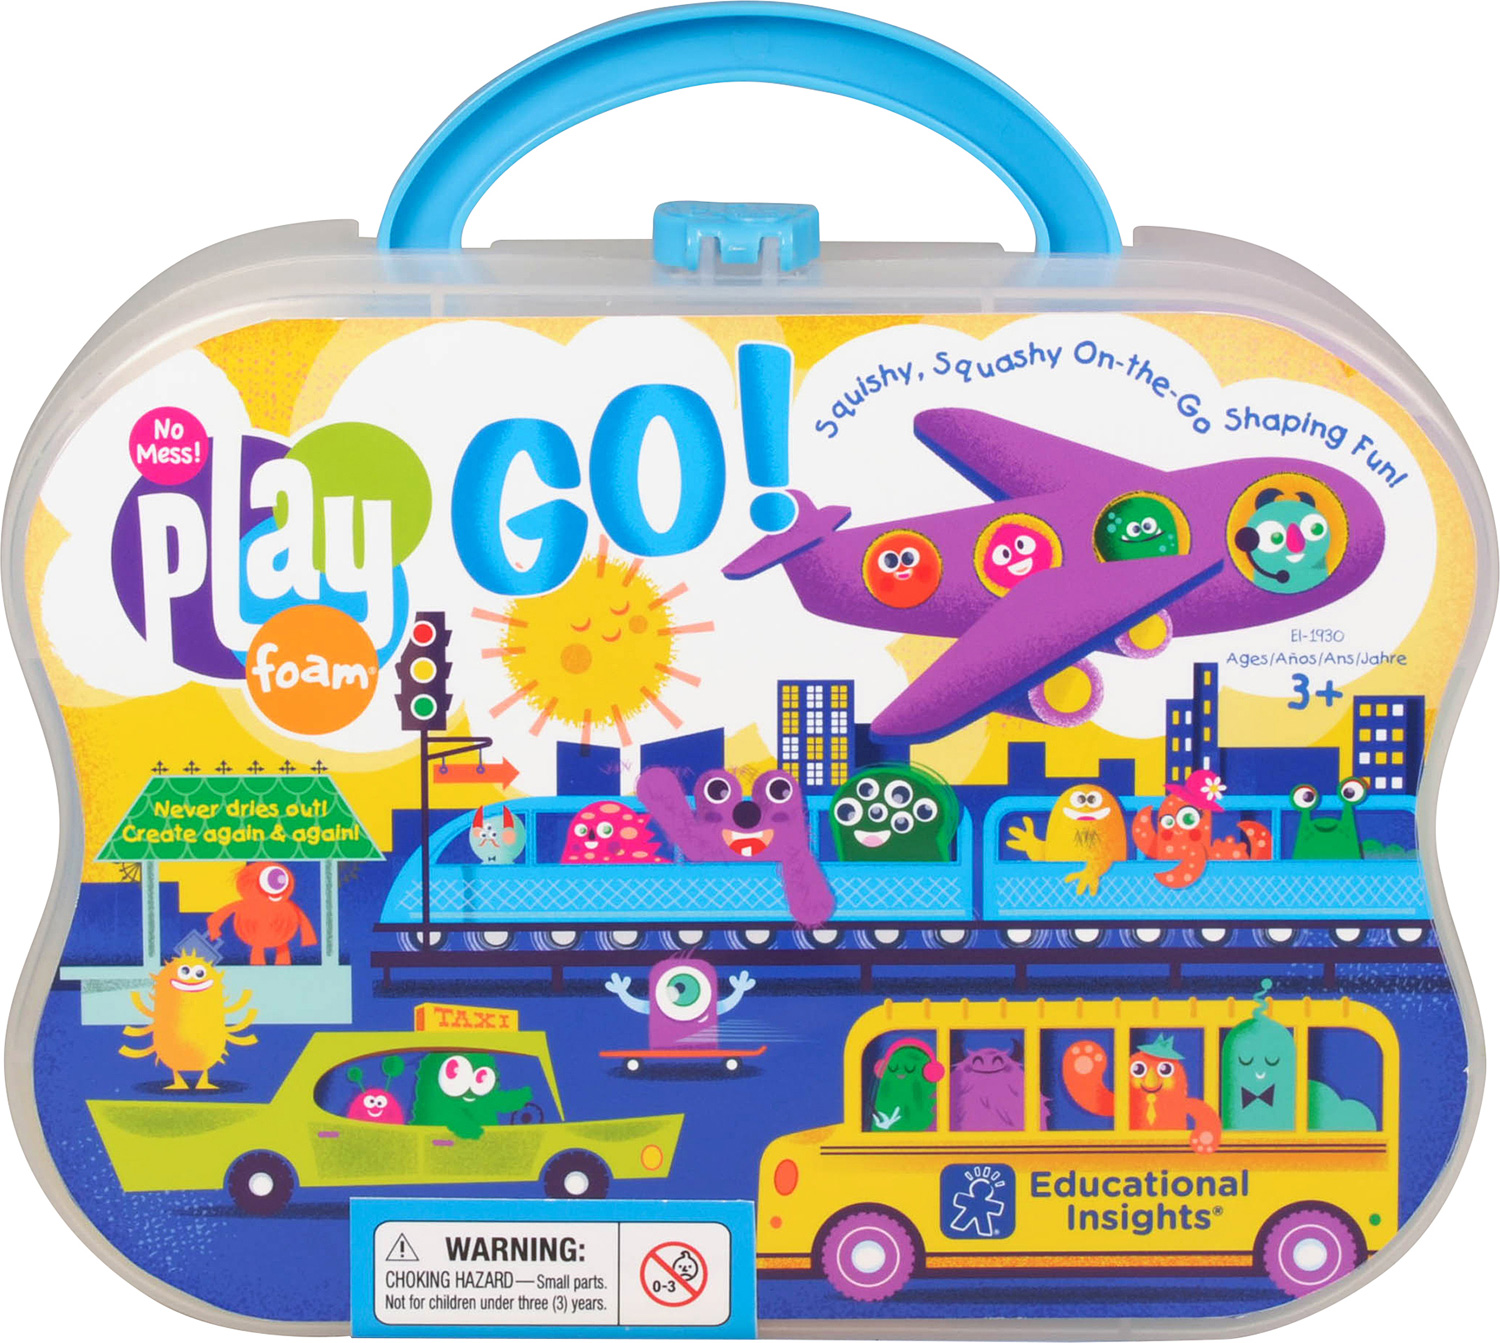 Playfoam® GO!